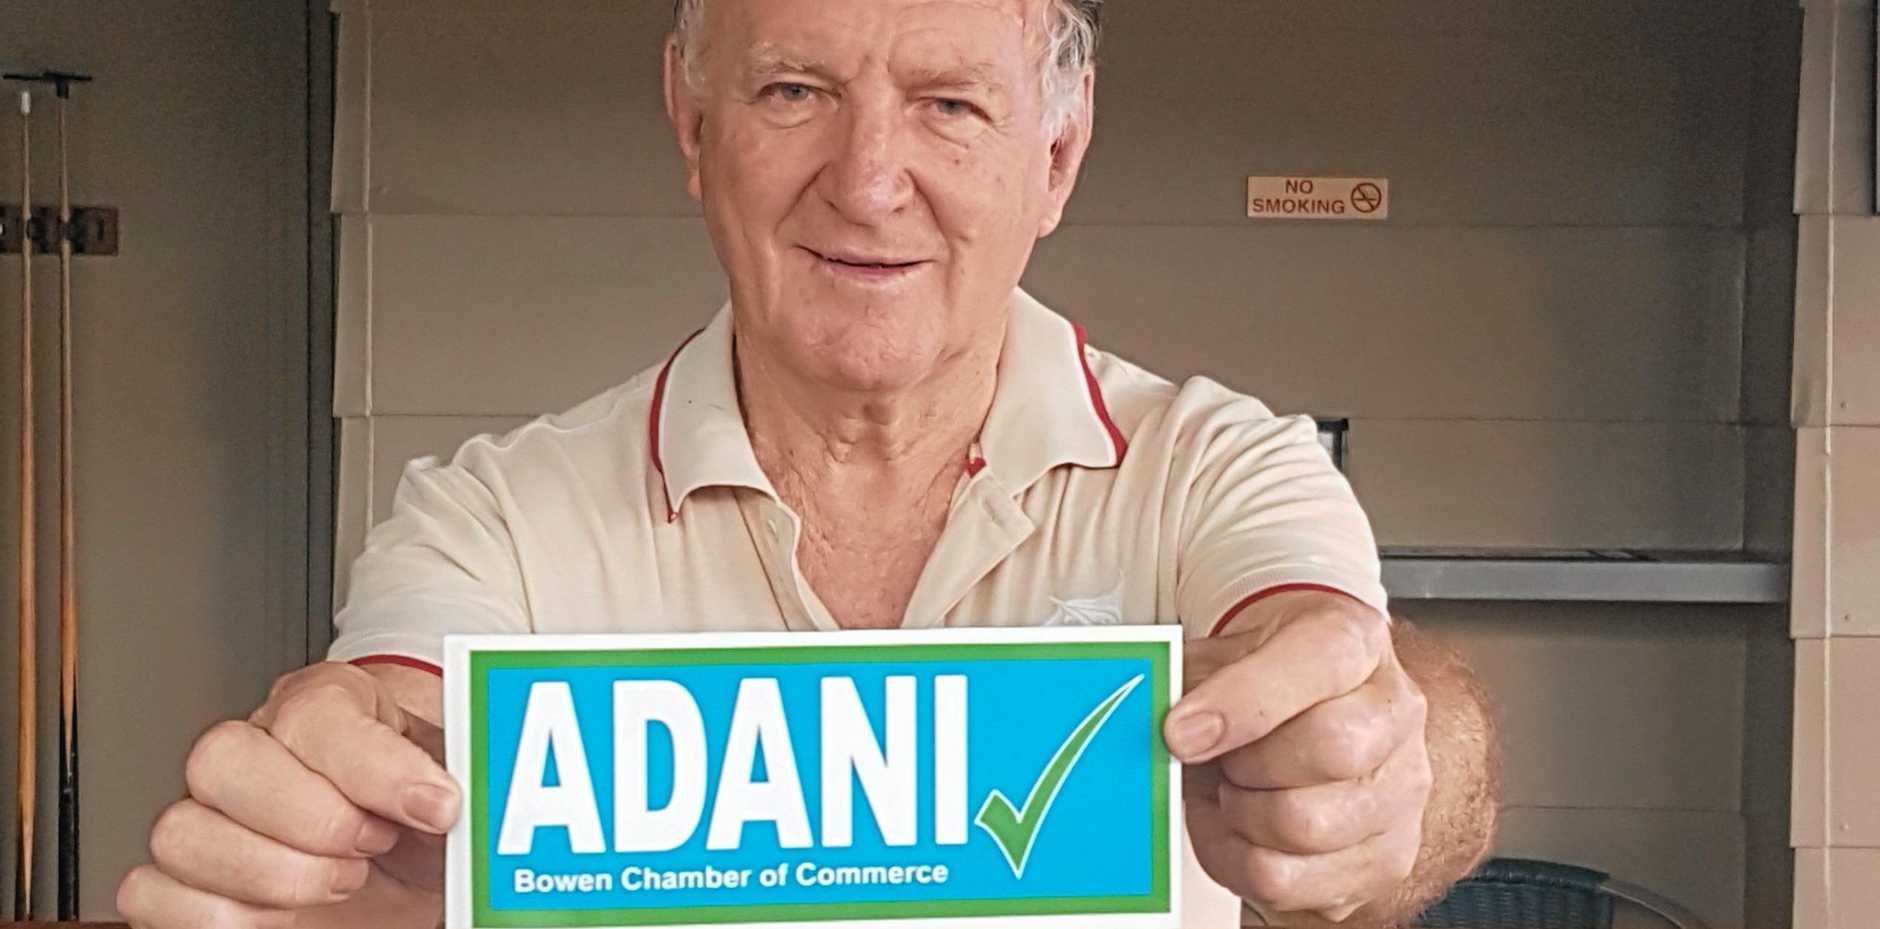 Bowen Chamber of Commerce chairman Bruce Hedditch and the new bumper sticker highlighting their support for Adani.